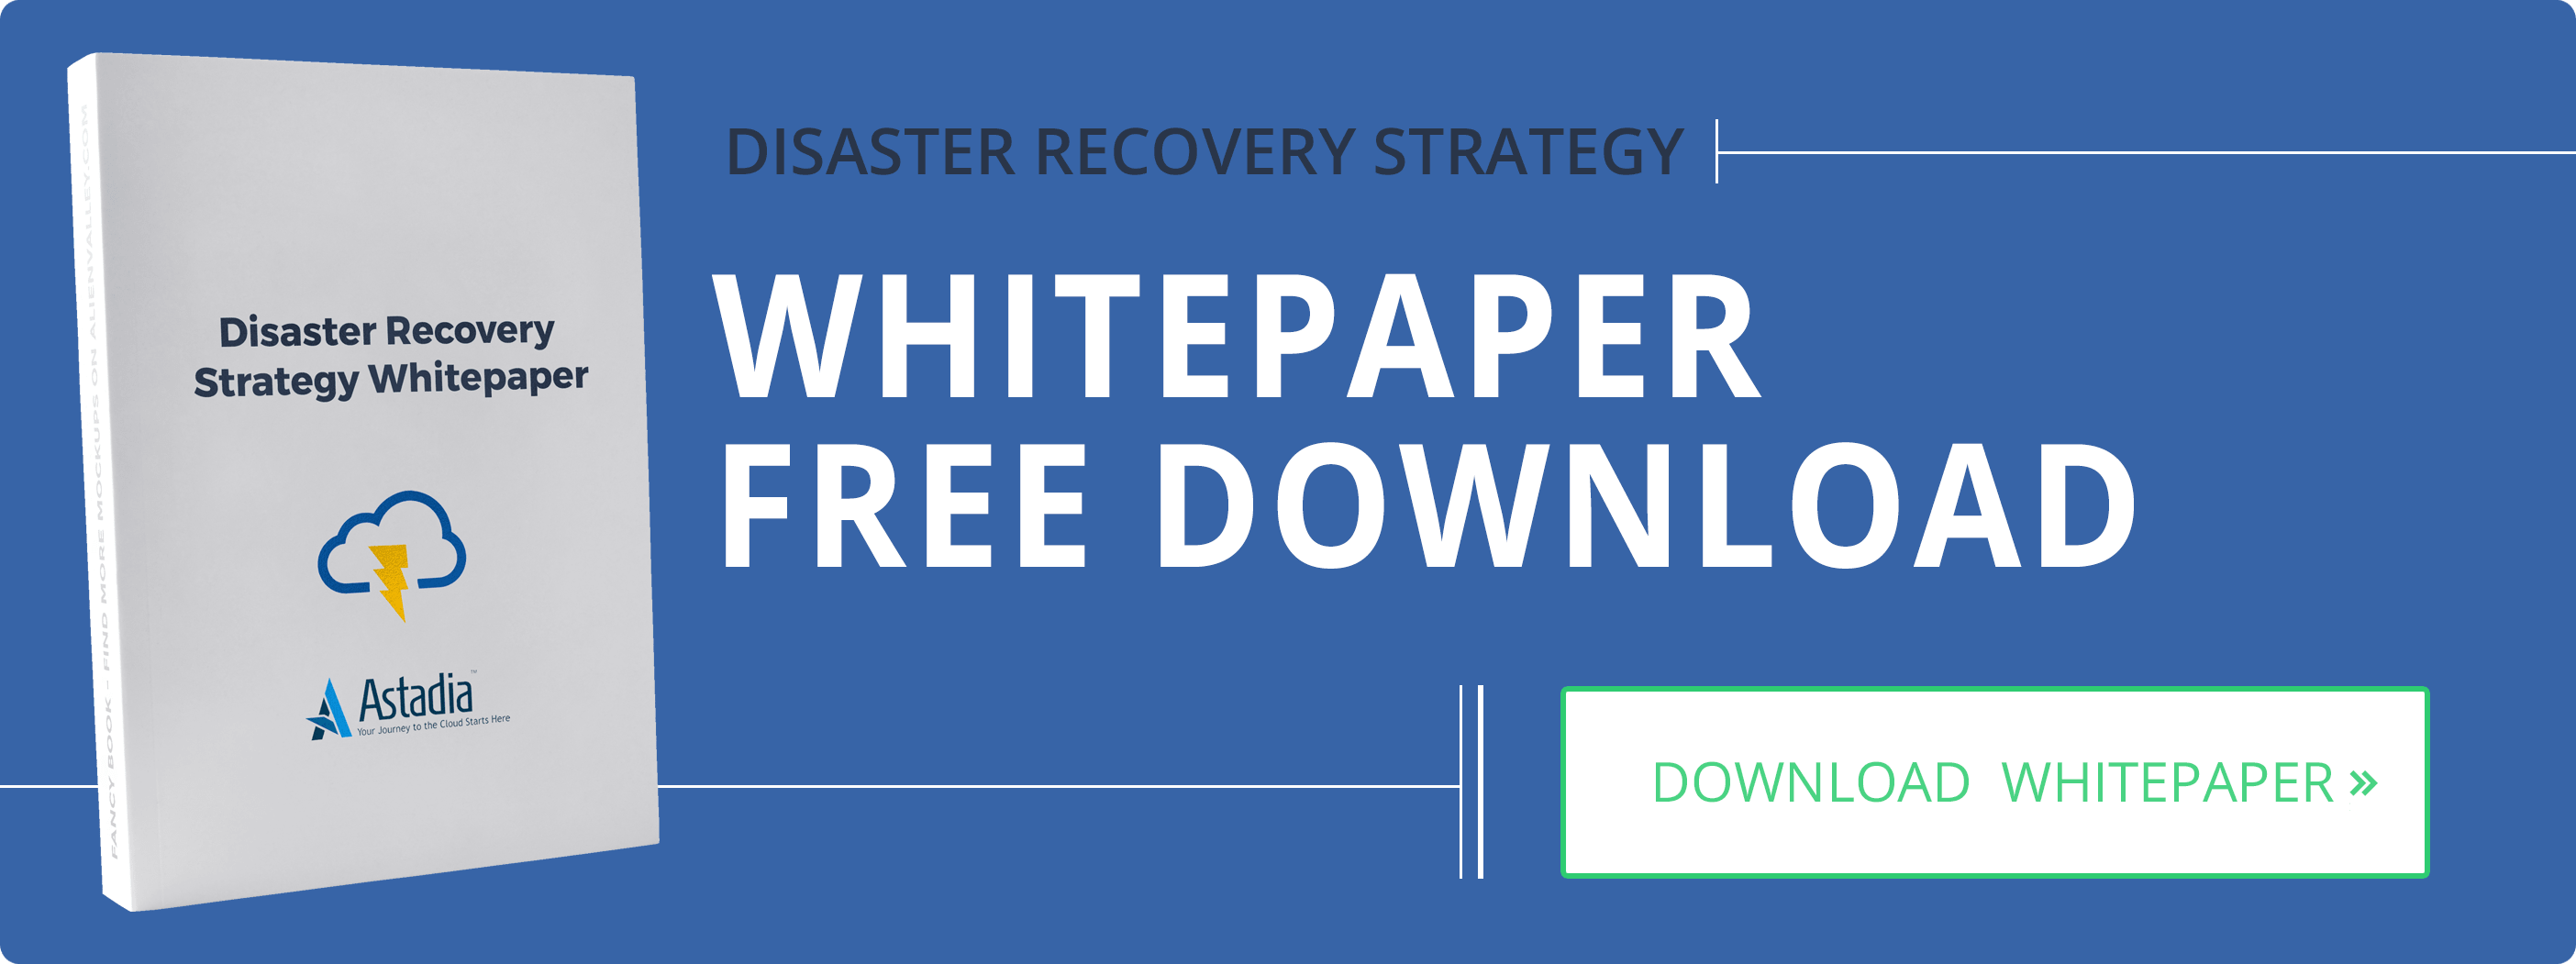 Disaster Recovery Strategy Whitepaper